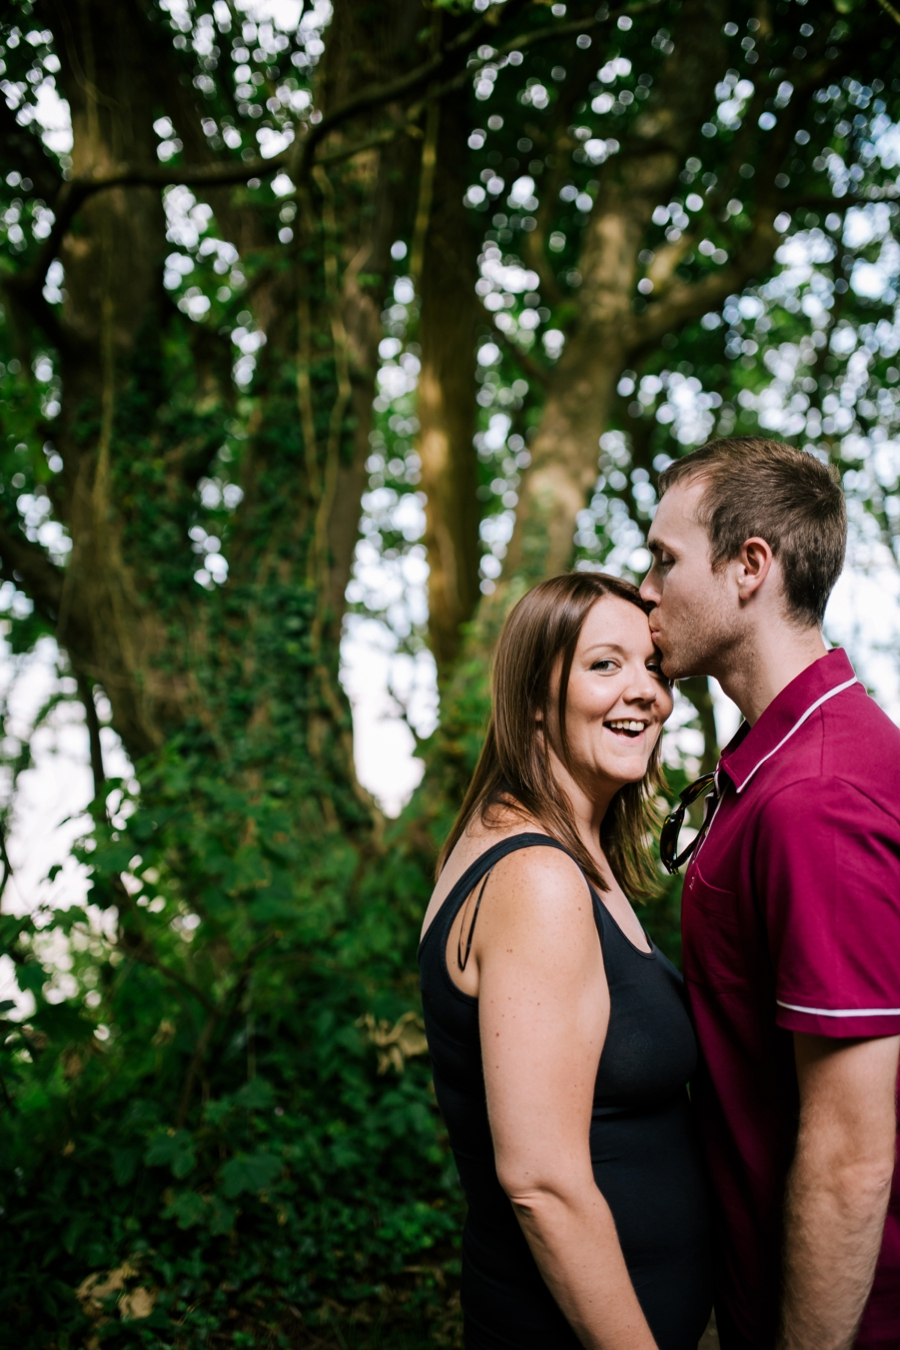 Somerset wedding photographer Gower coast engagement shoot Sarah and Andrew 4